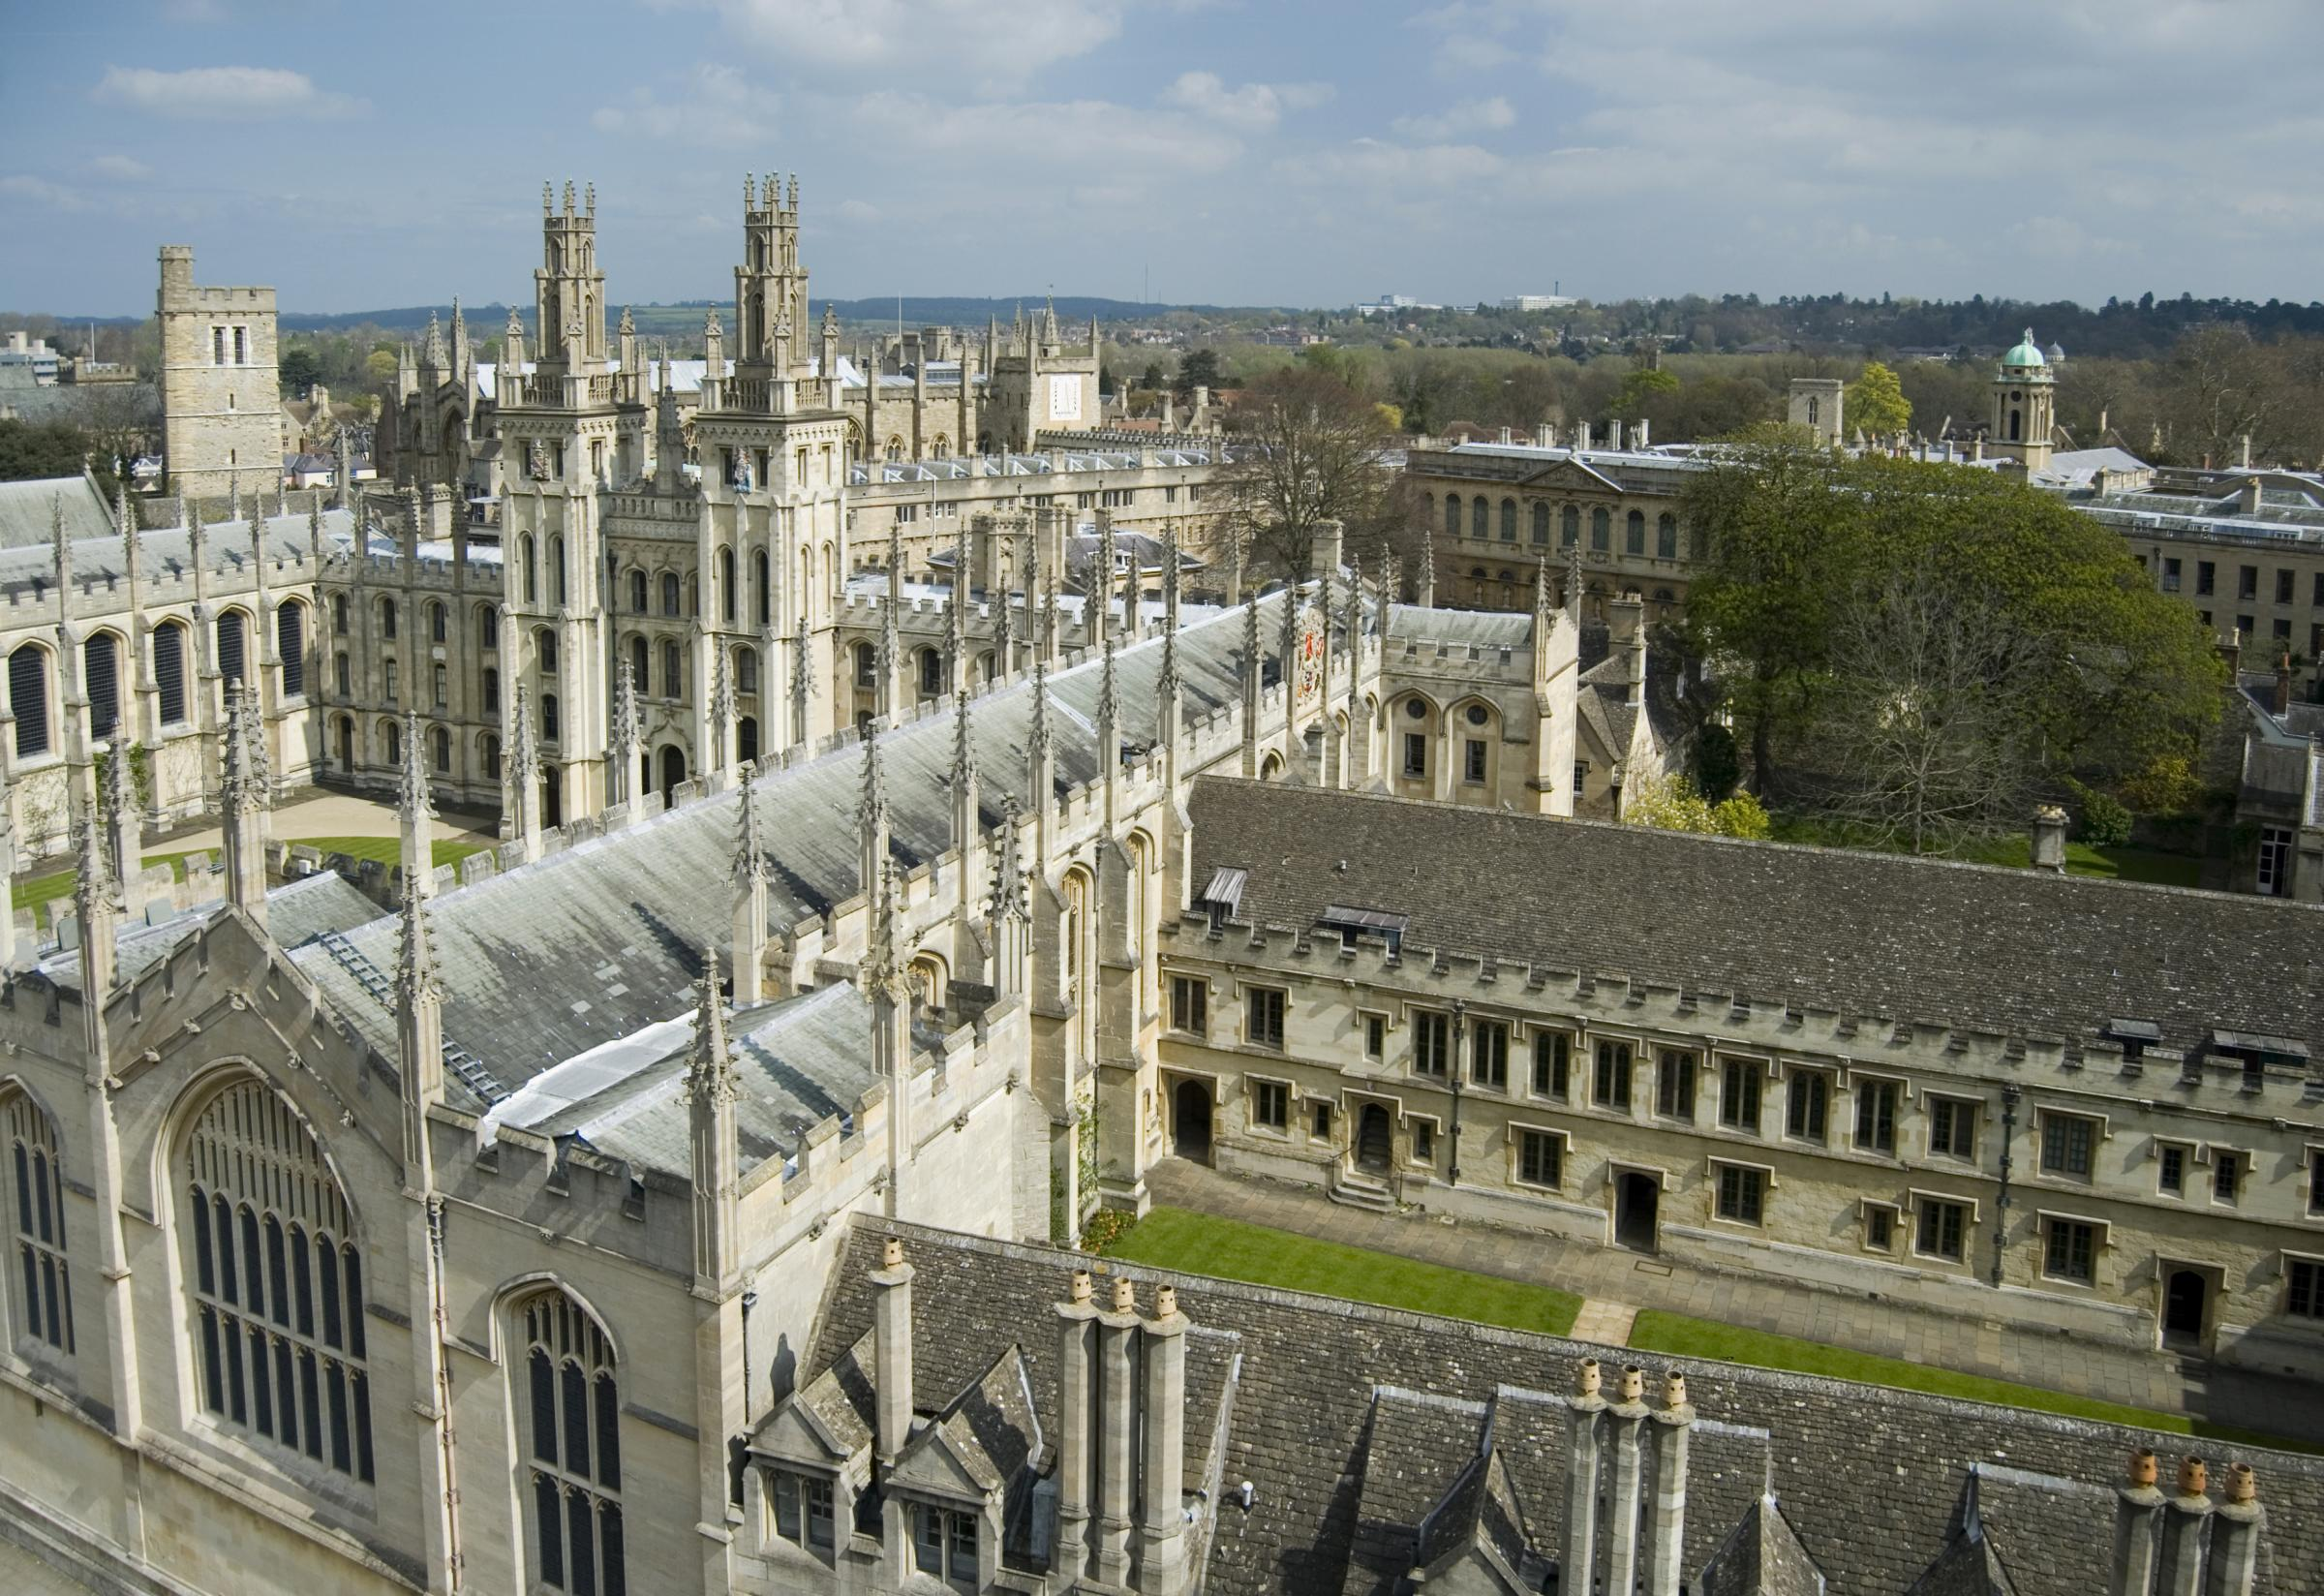 Seats of learning: Oxford University's colleges are not normally associated with the need for guns